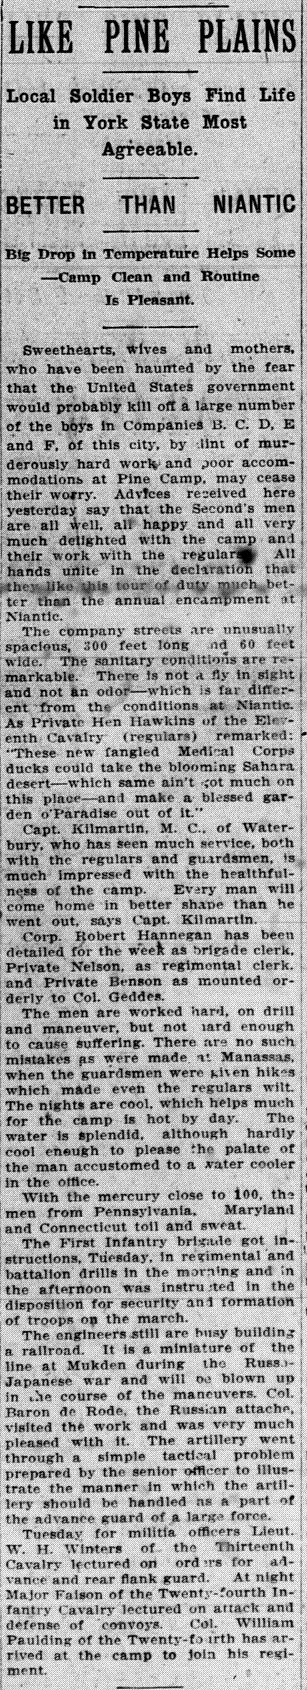 Daily Morning Journal-Courier, July 9, 1908, p. 1, col. 2